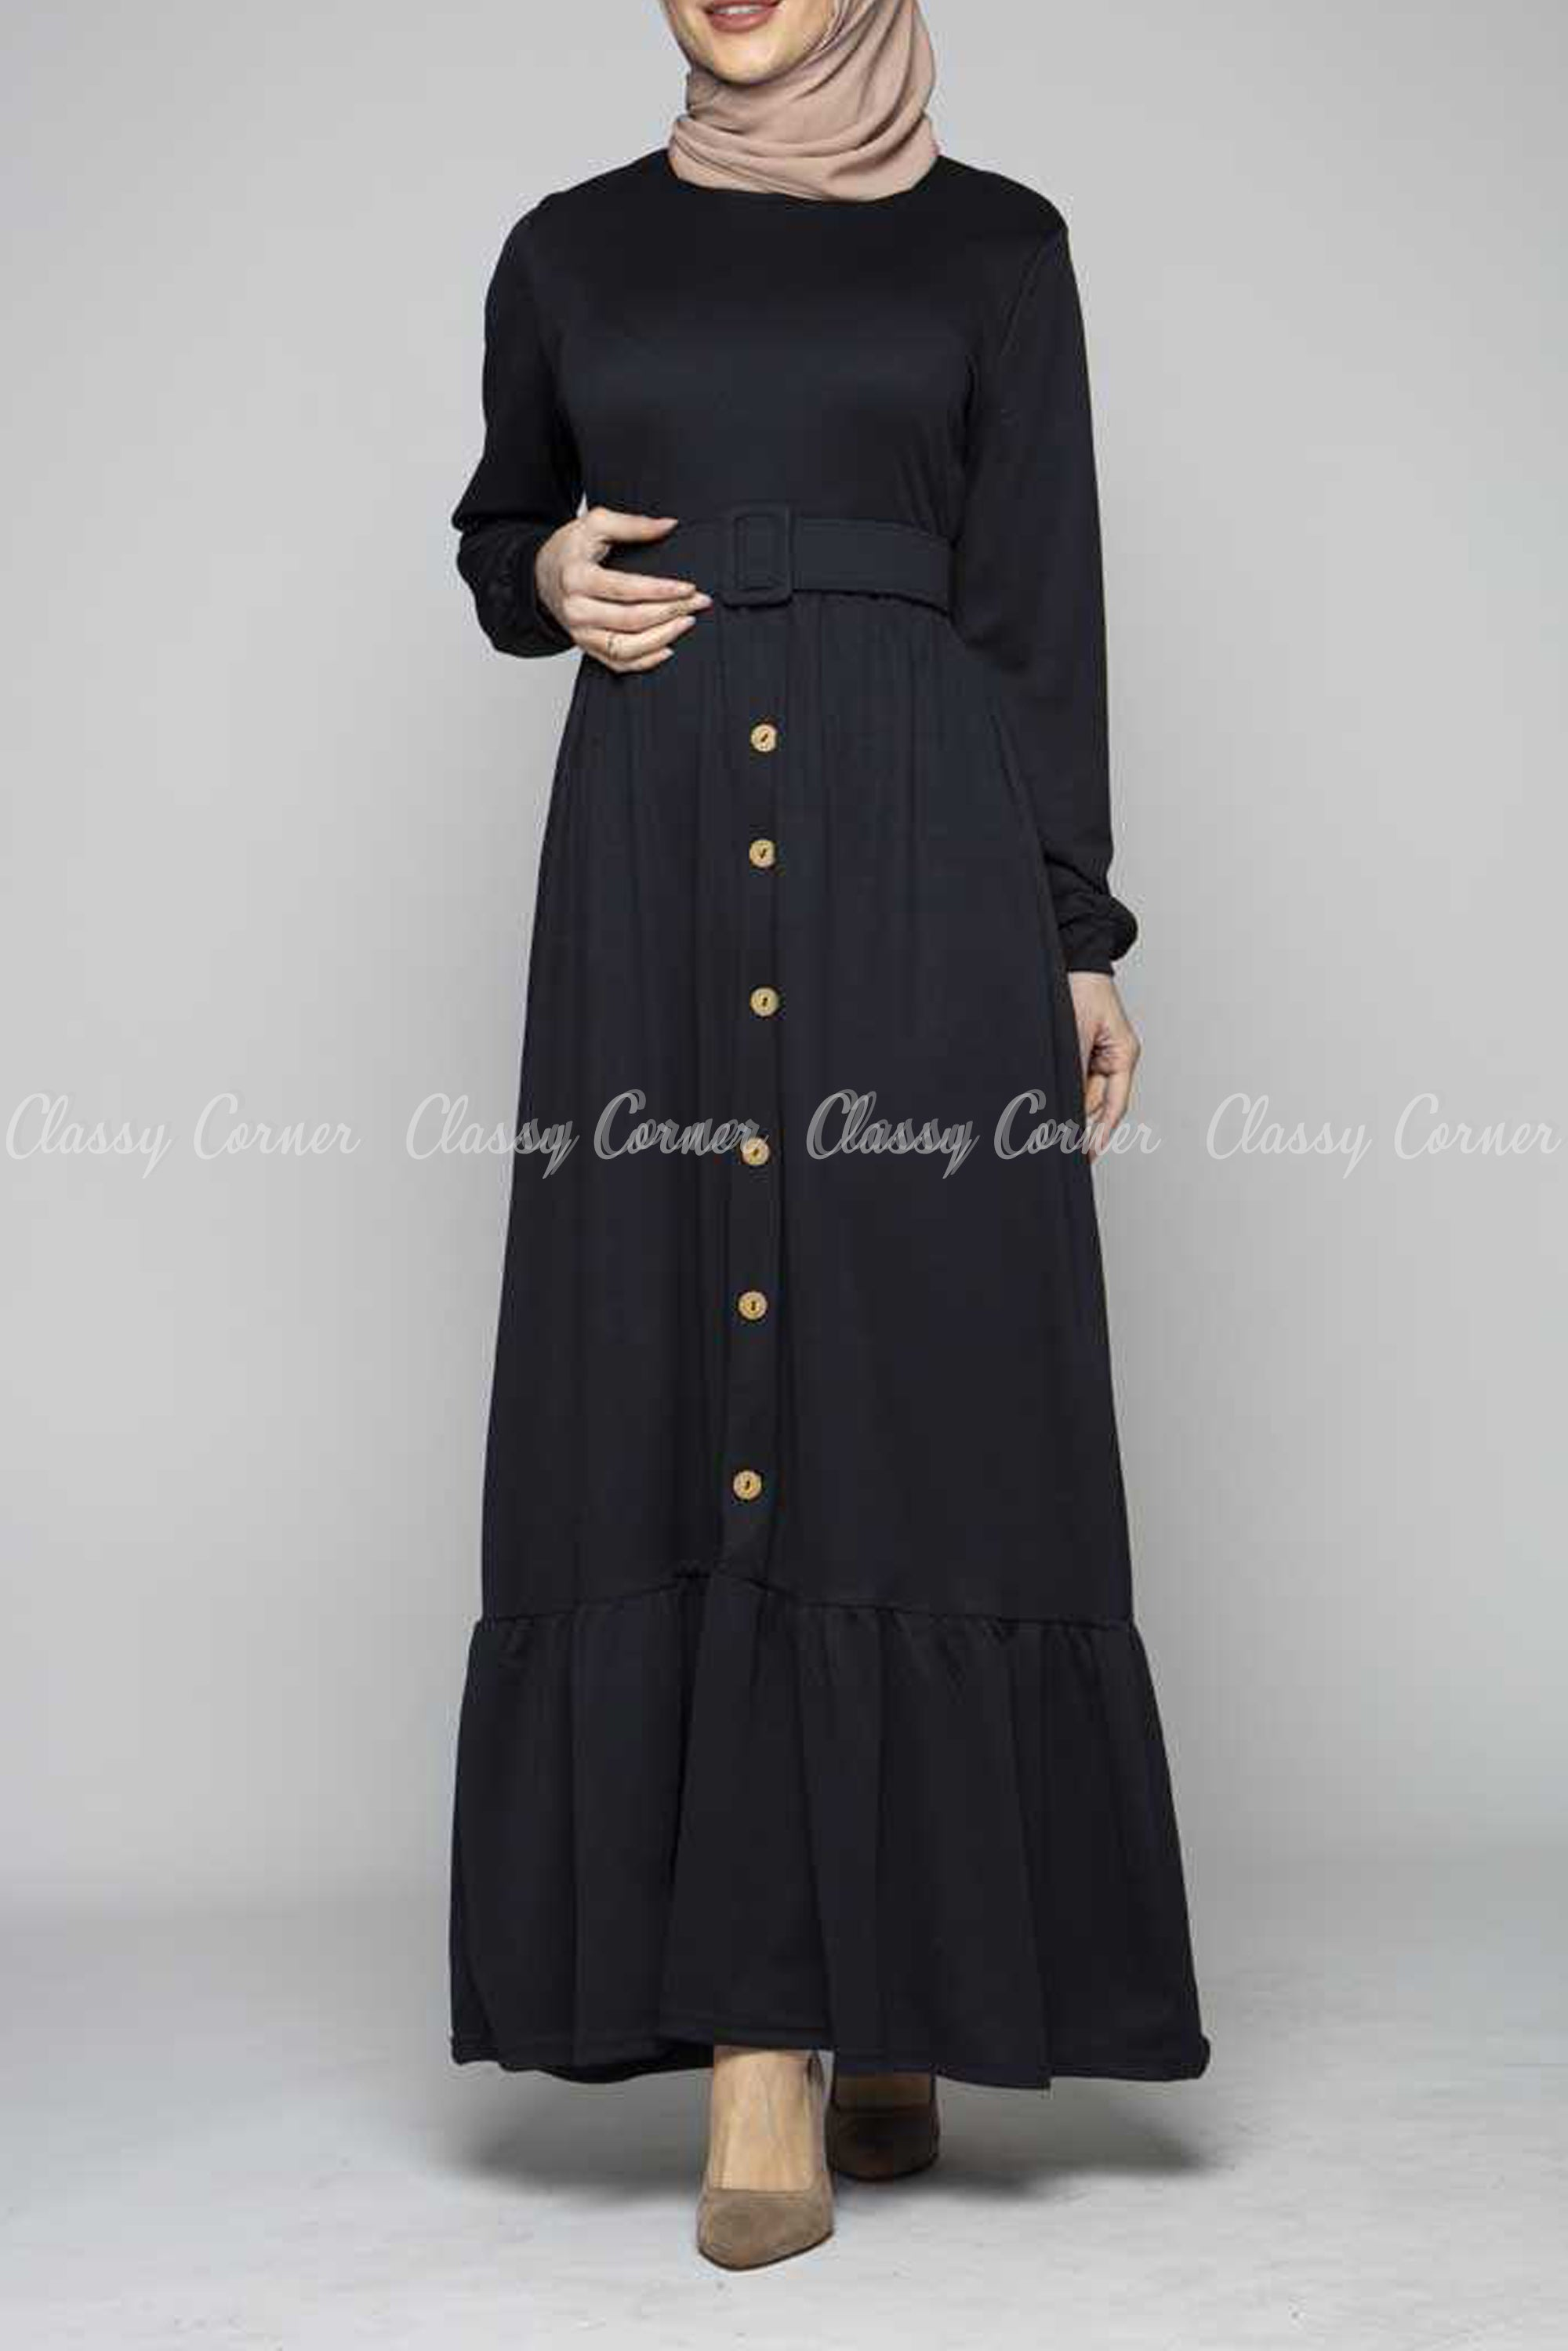 Minimalist Ruffled Bottom Skirt Black Modest Long Dress